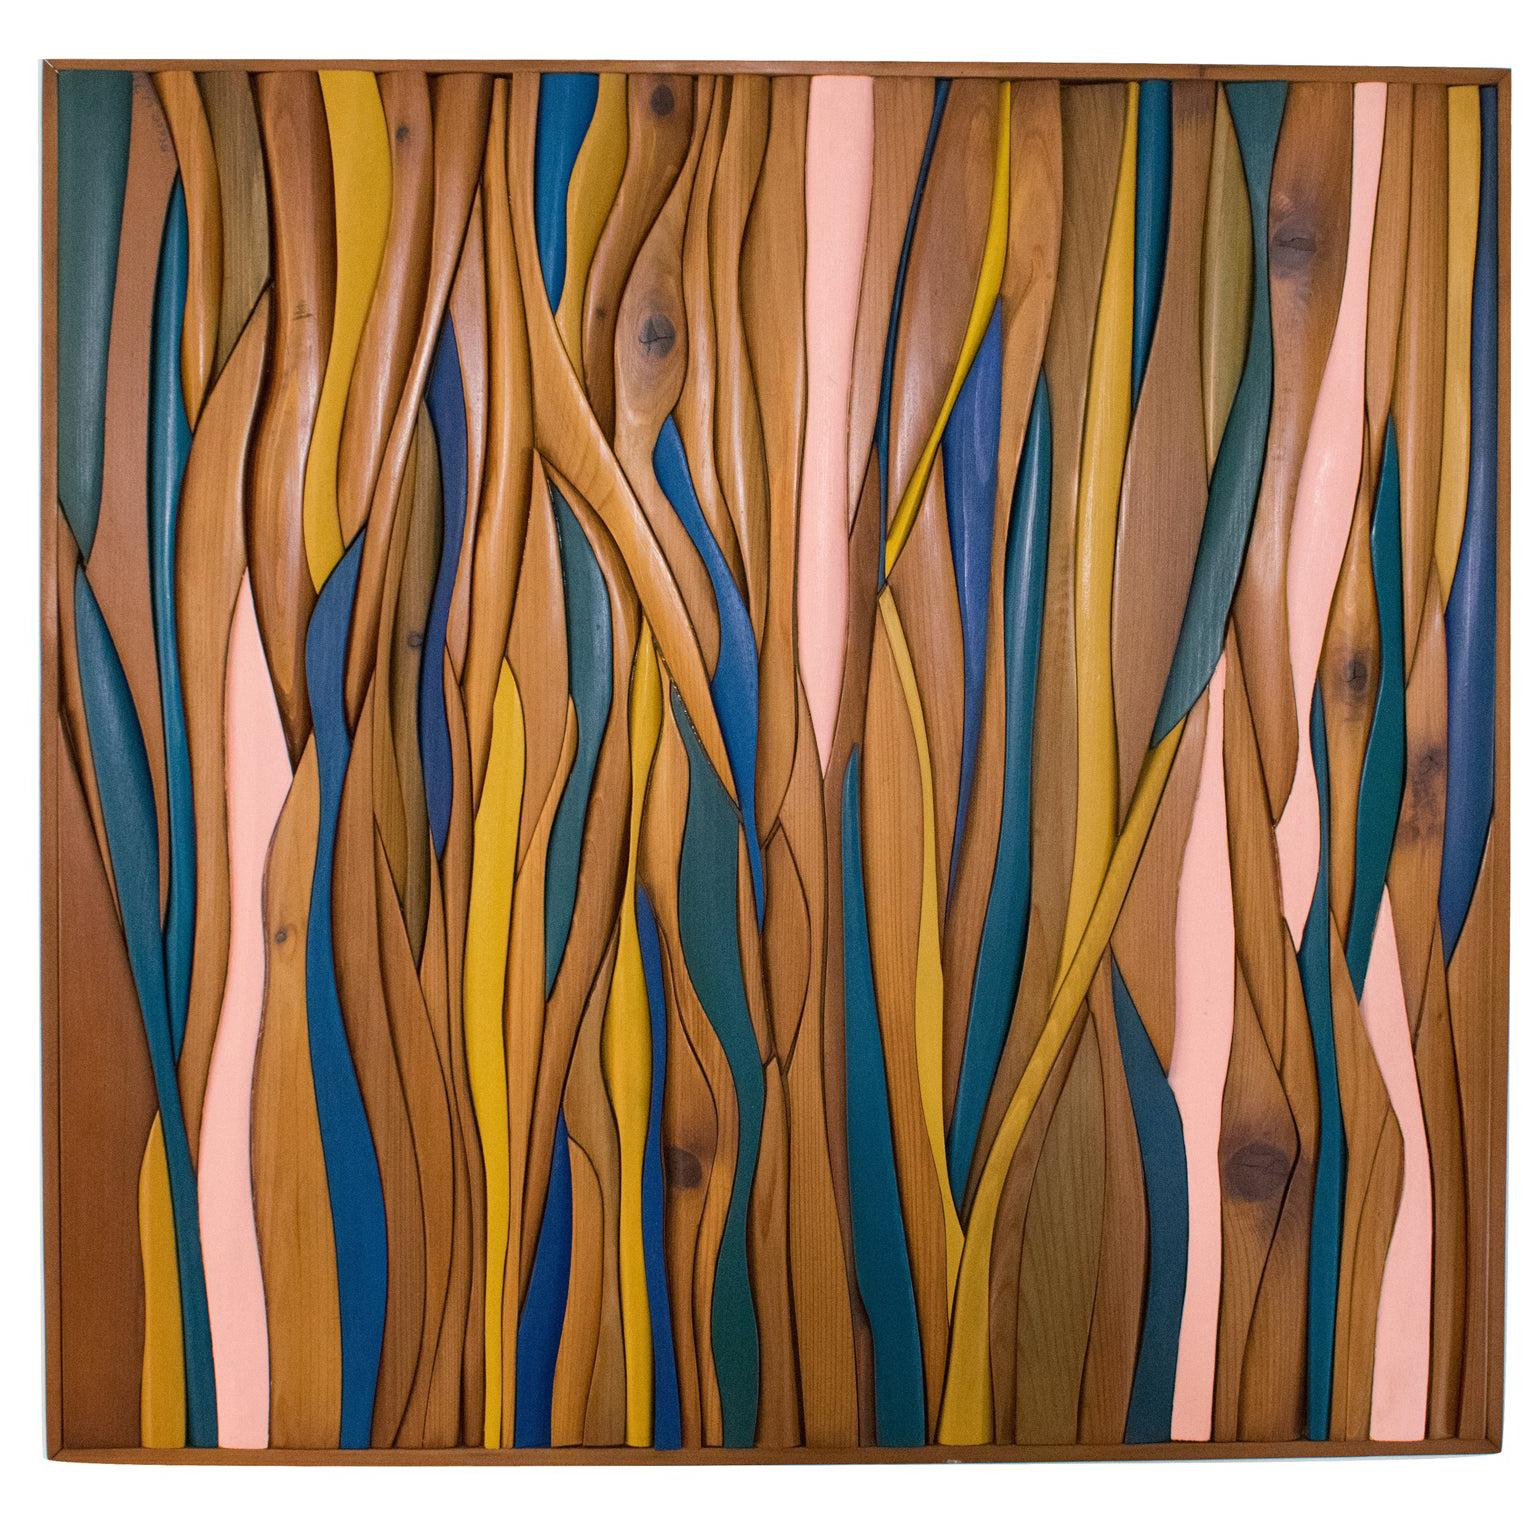 1970s Carved Wood Abstract Mosaic Wall Sculpture Panel by Blair York